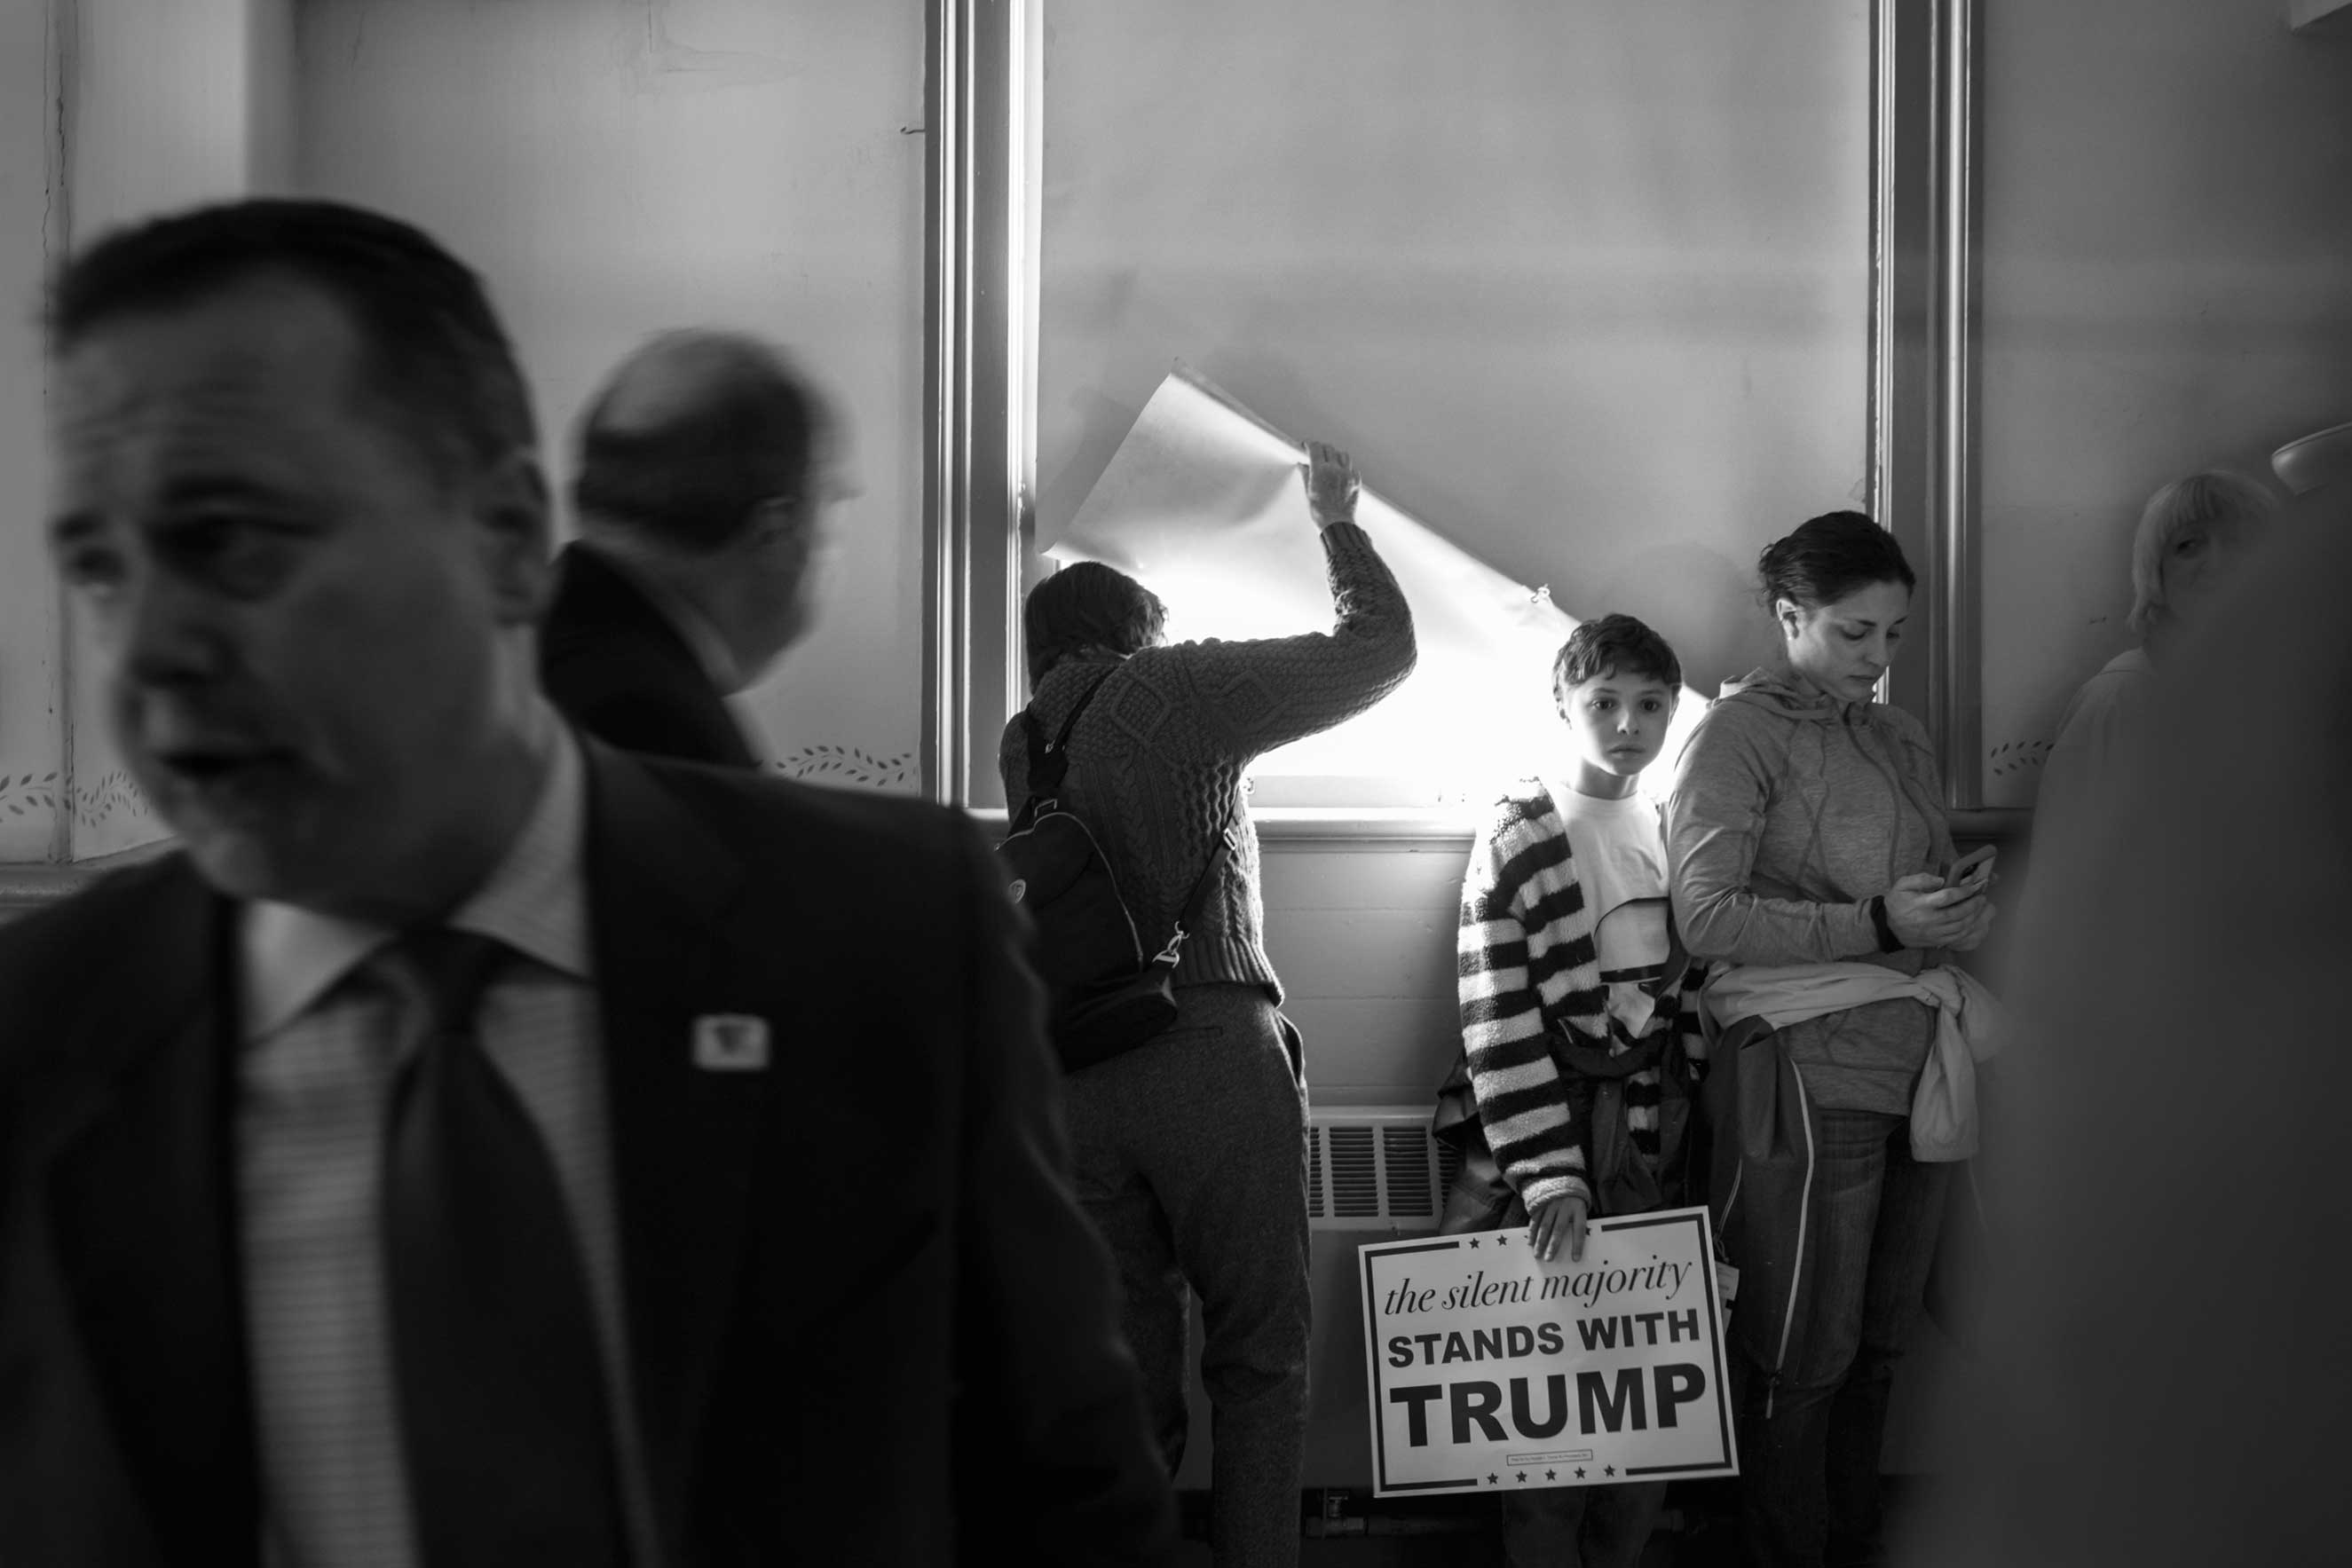 04 Feb 2016 - Exeter, New Hampshire - Supporters are waiting for Republican presidential candidate Donald J. Trump to arrive for his speech at the Exeter Town Hall.